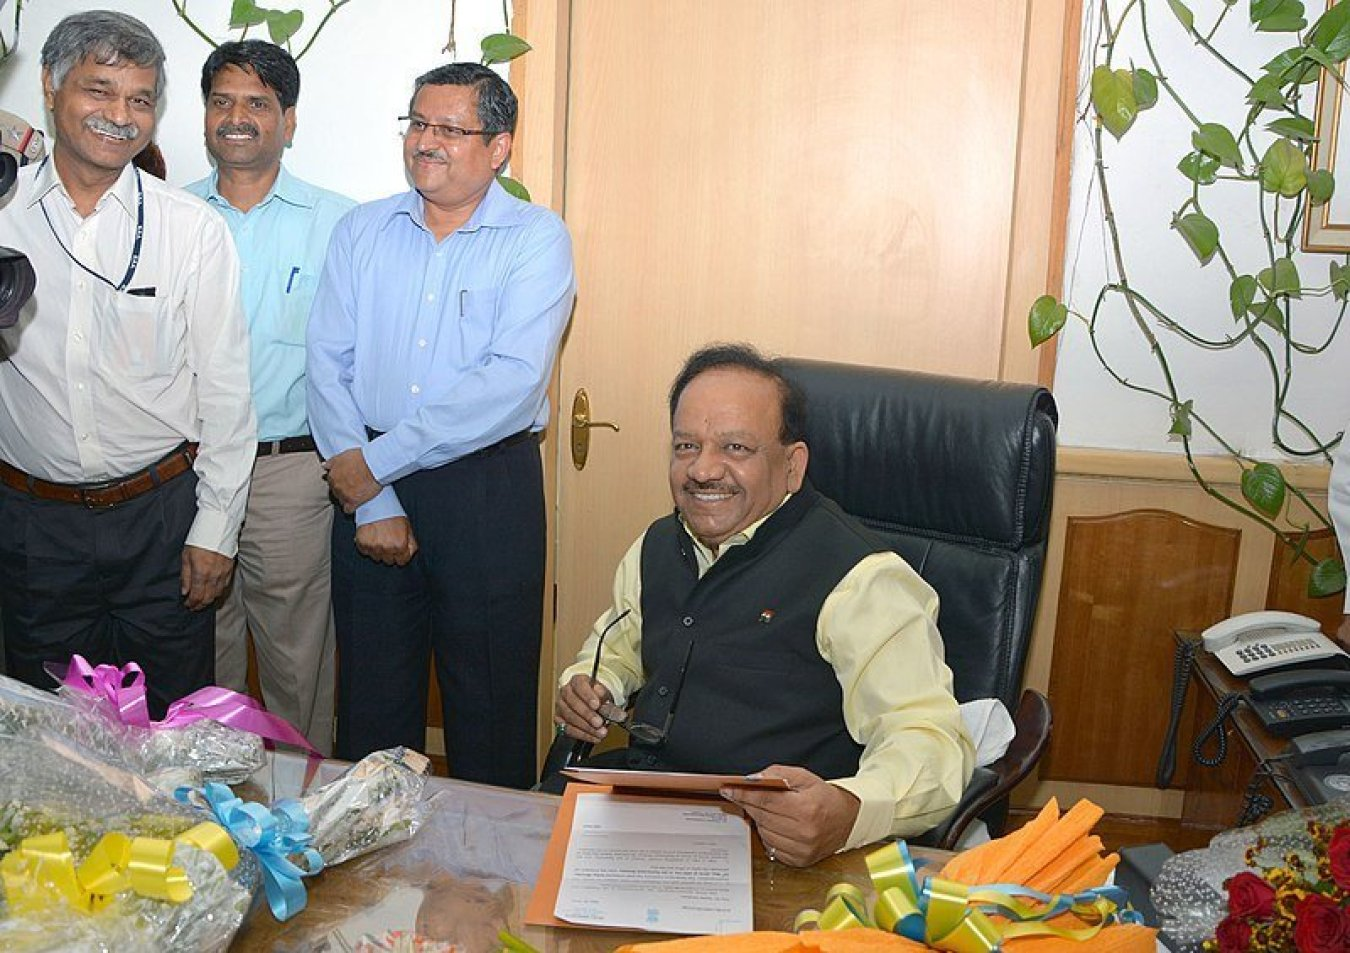 Union Health MInister Dr Harsh Vardhan, who touted the importance of UHC at a WHO event. Image credit: Ministry of Health and Family Welfare (GODL-India) [GODL-India (https://data.gov.in/sites/default/files/Gazette_Notification_OGDL.pdf)] This file or its source was published by Press Information Bureau on behalf of Ministry of Health and Family Welfare, Government of India under the ID 54064and CNR 56840.(directlink)